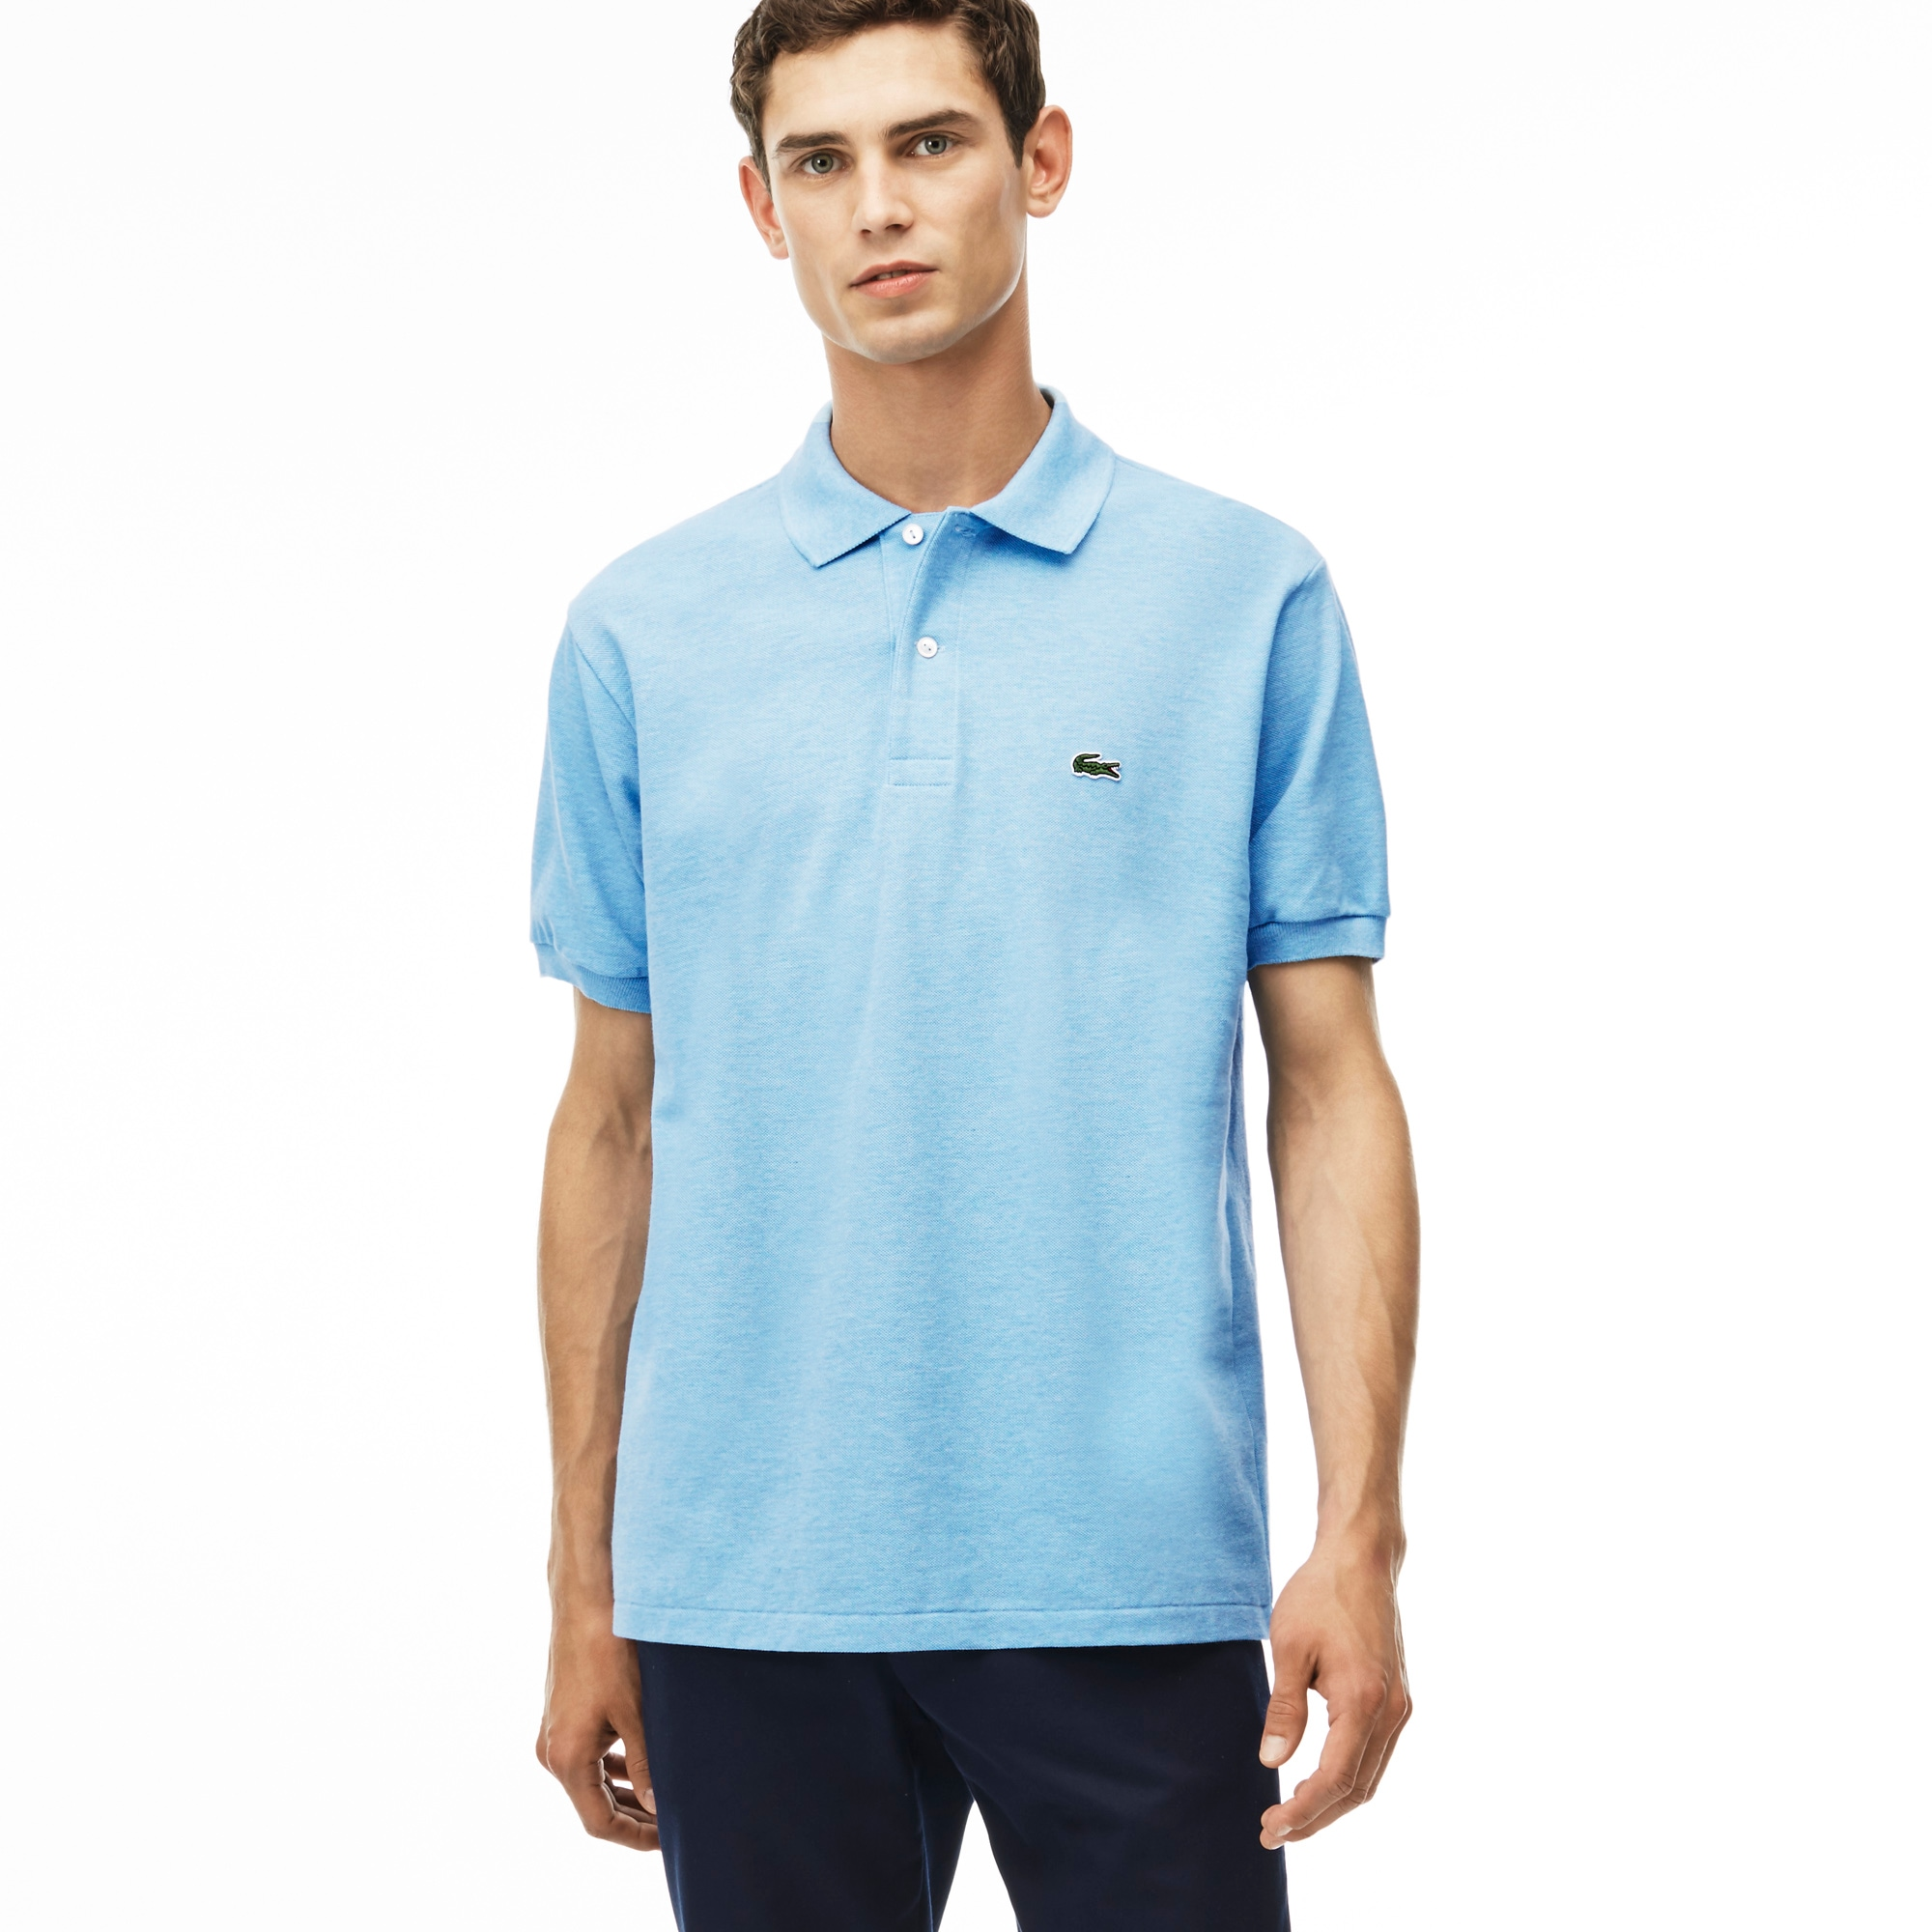 Men 39 s clothing on sale lacoste for Polo shirts for men on sale